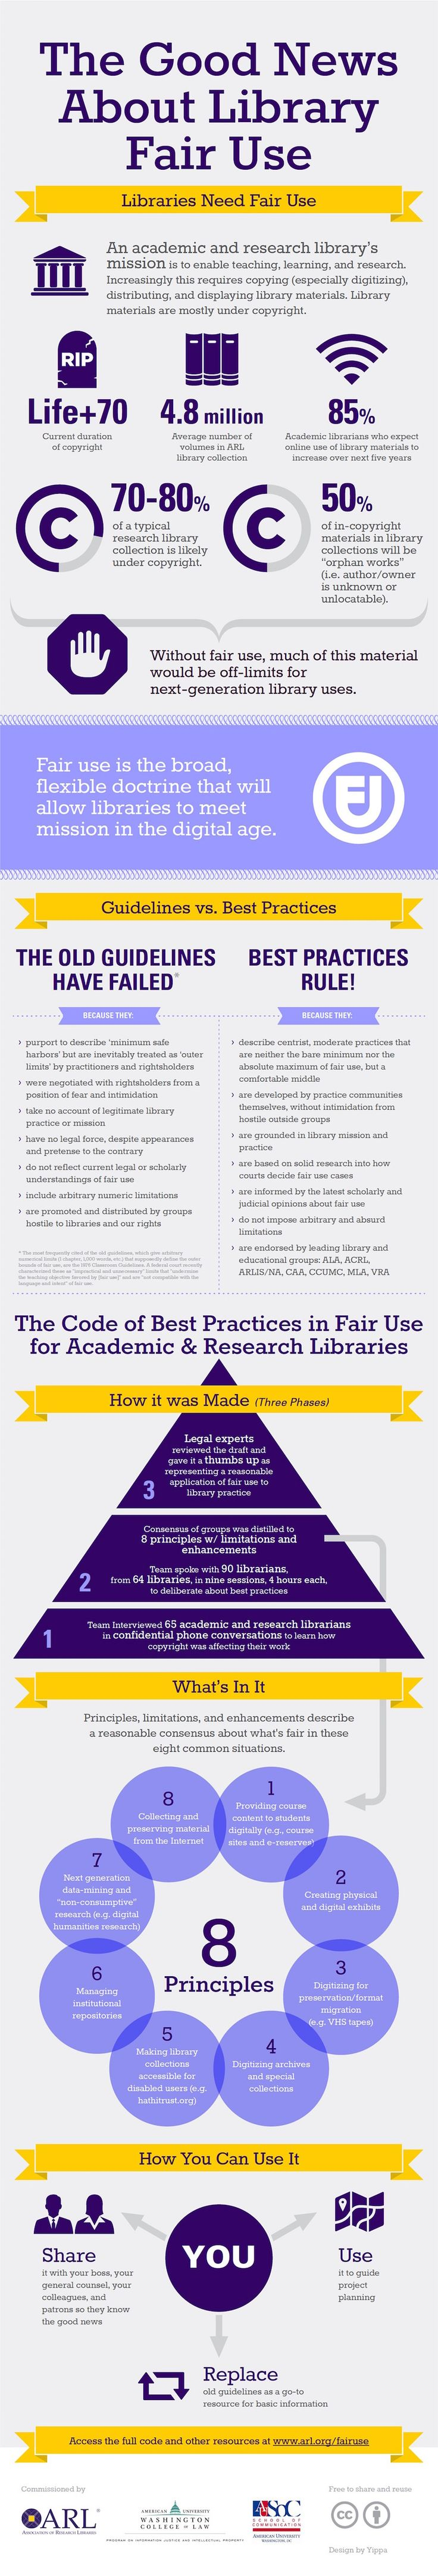 Why libraries need Fair Use – infographic | Ebook Friendly